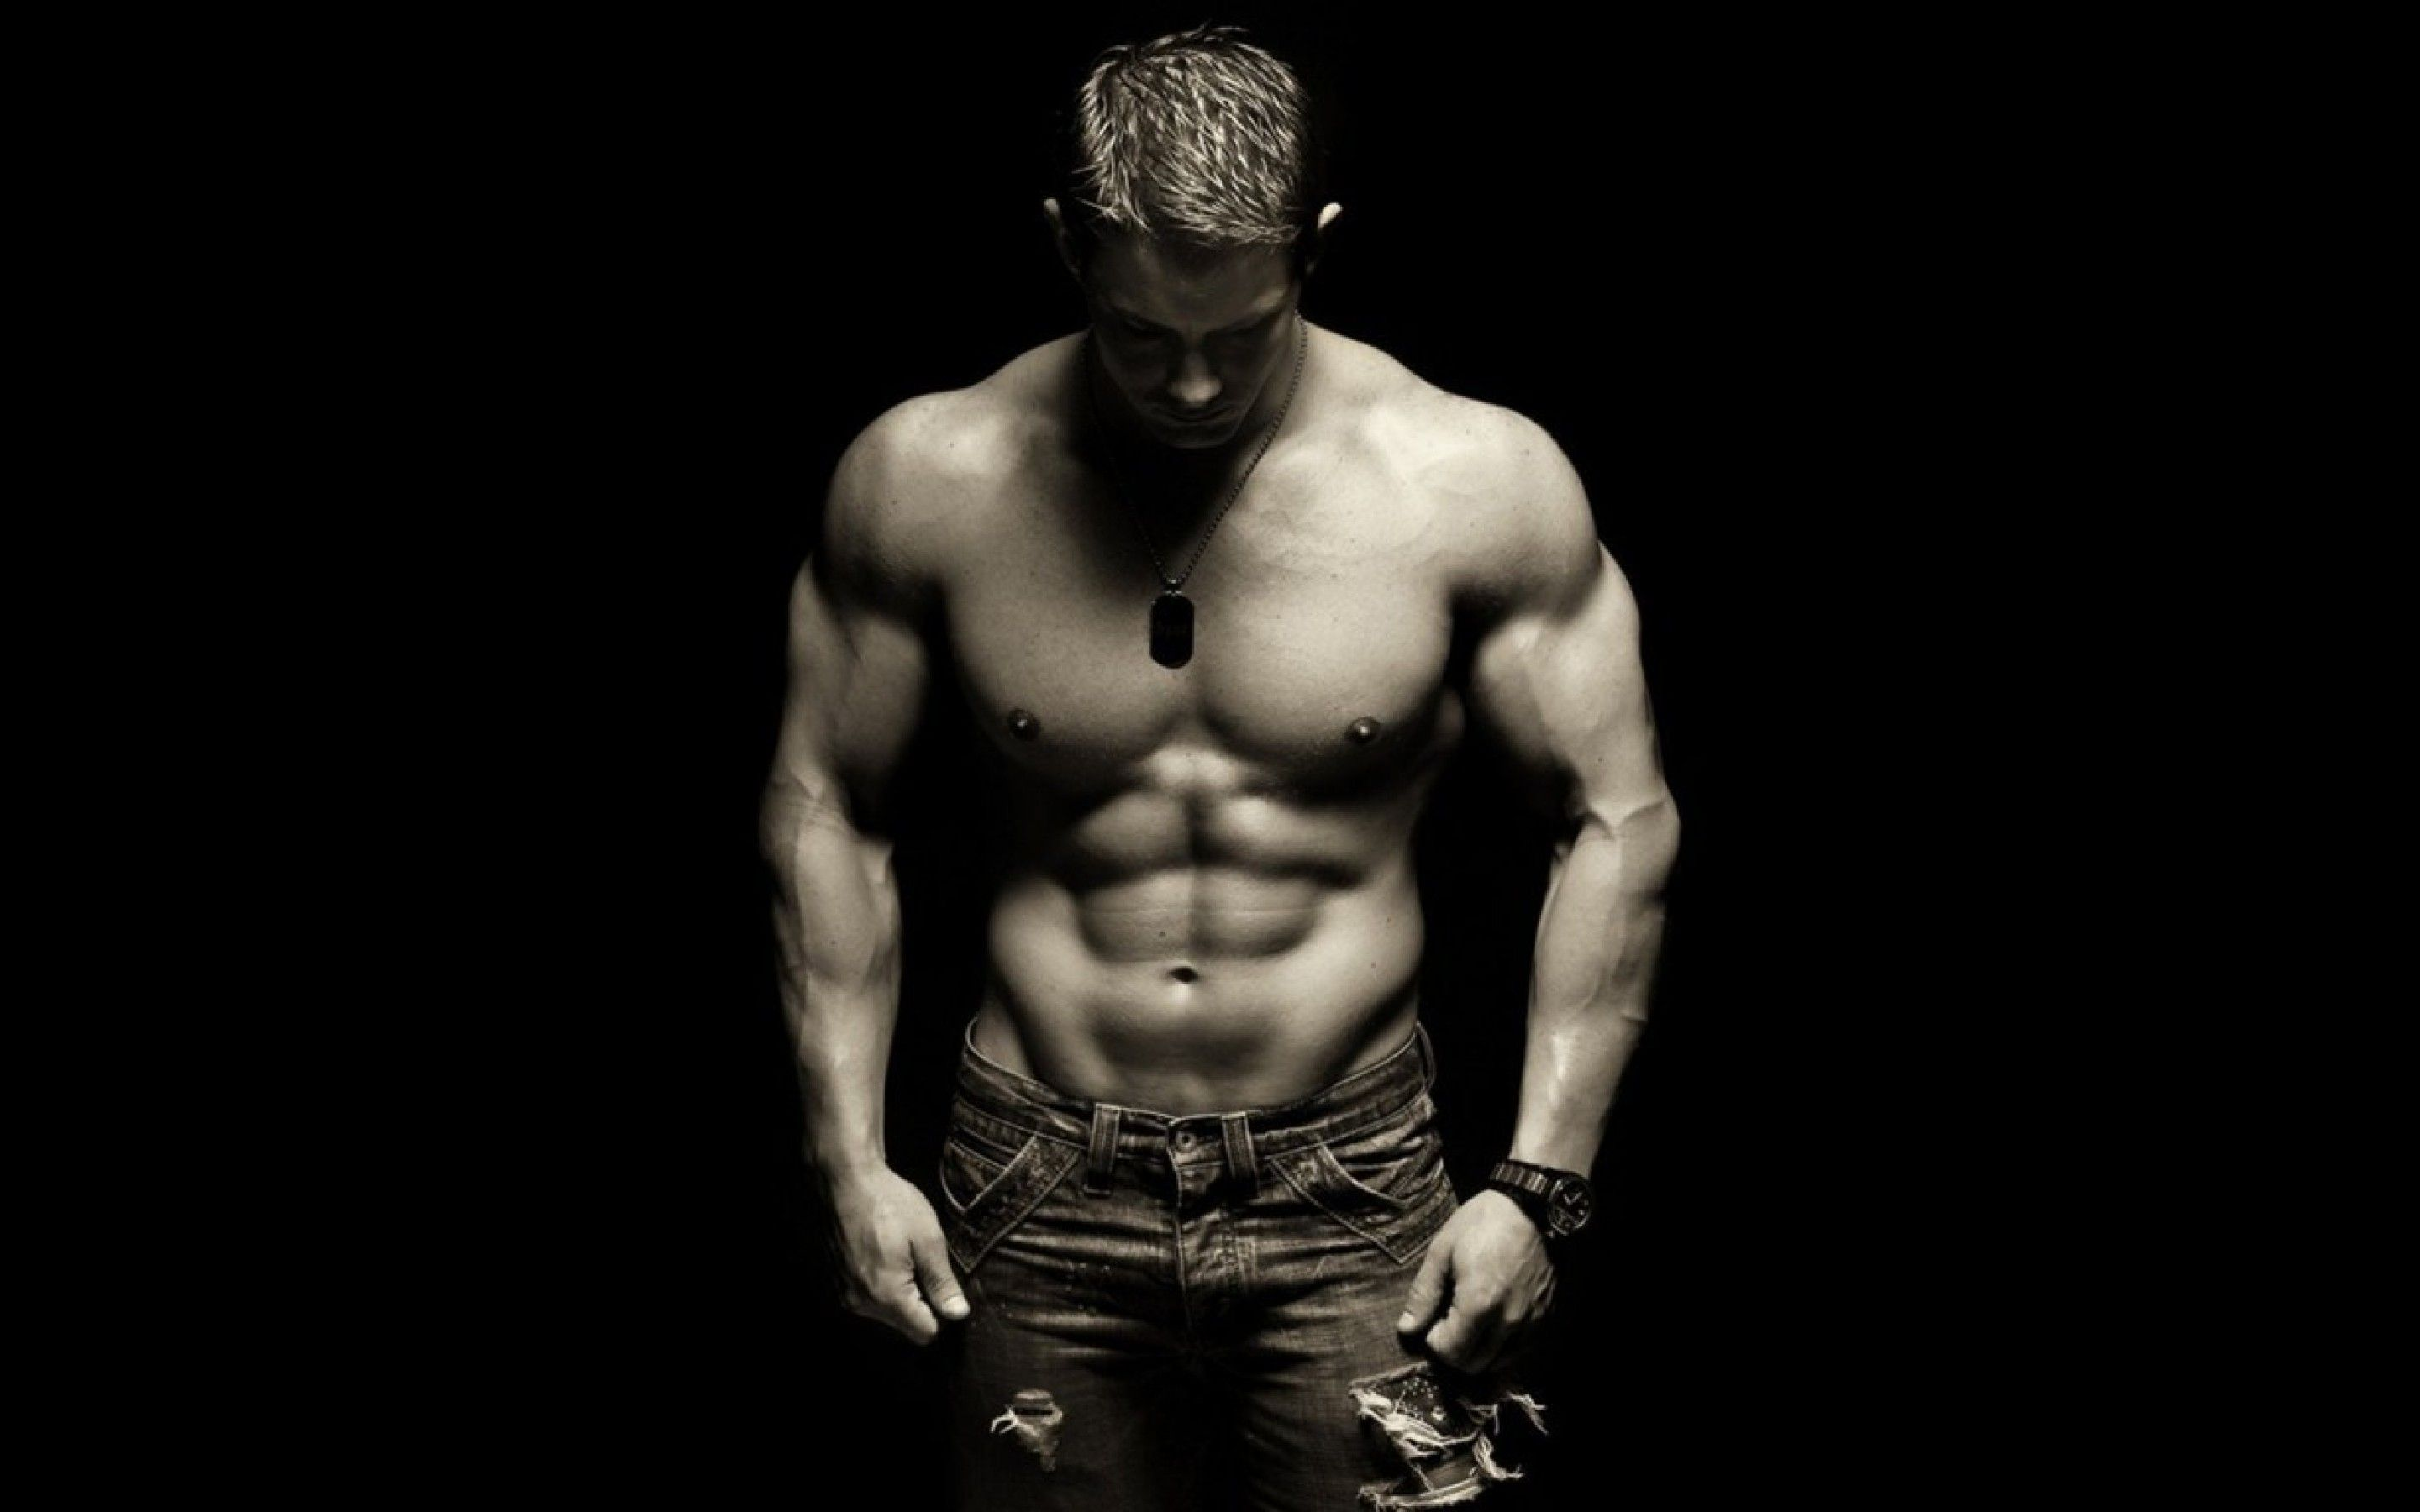 Wallpaper Of Body Builders